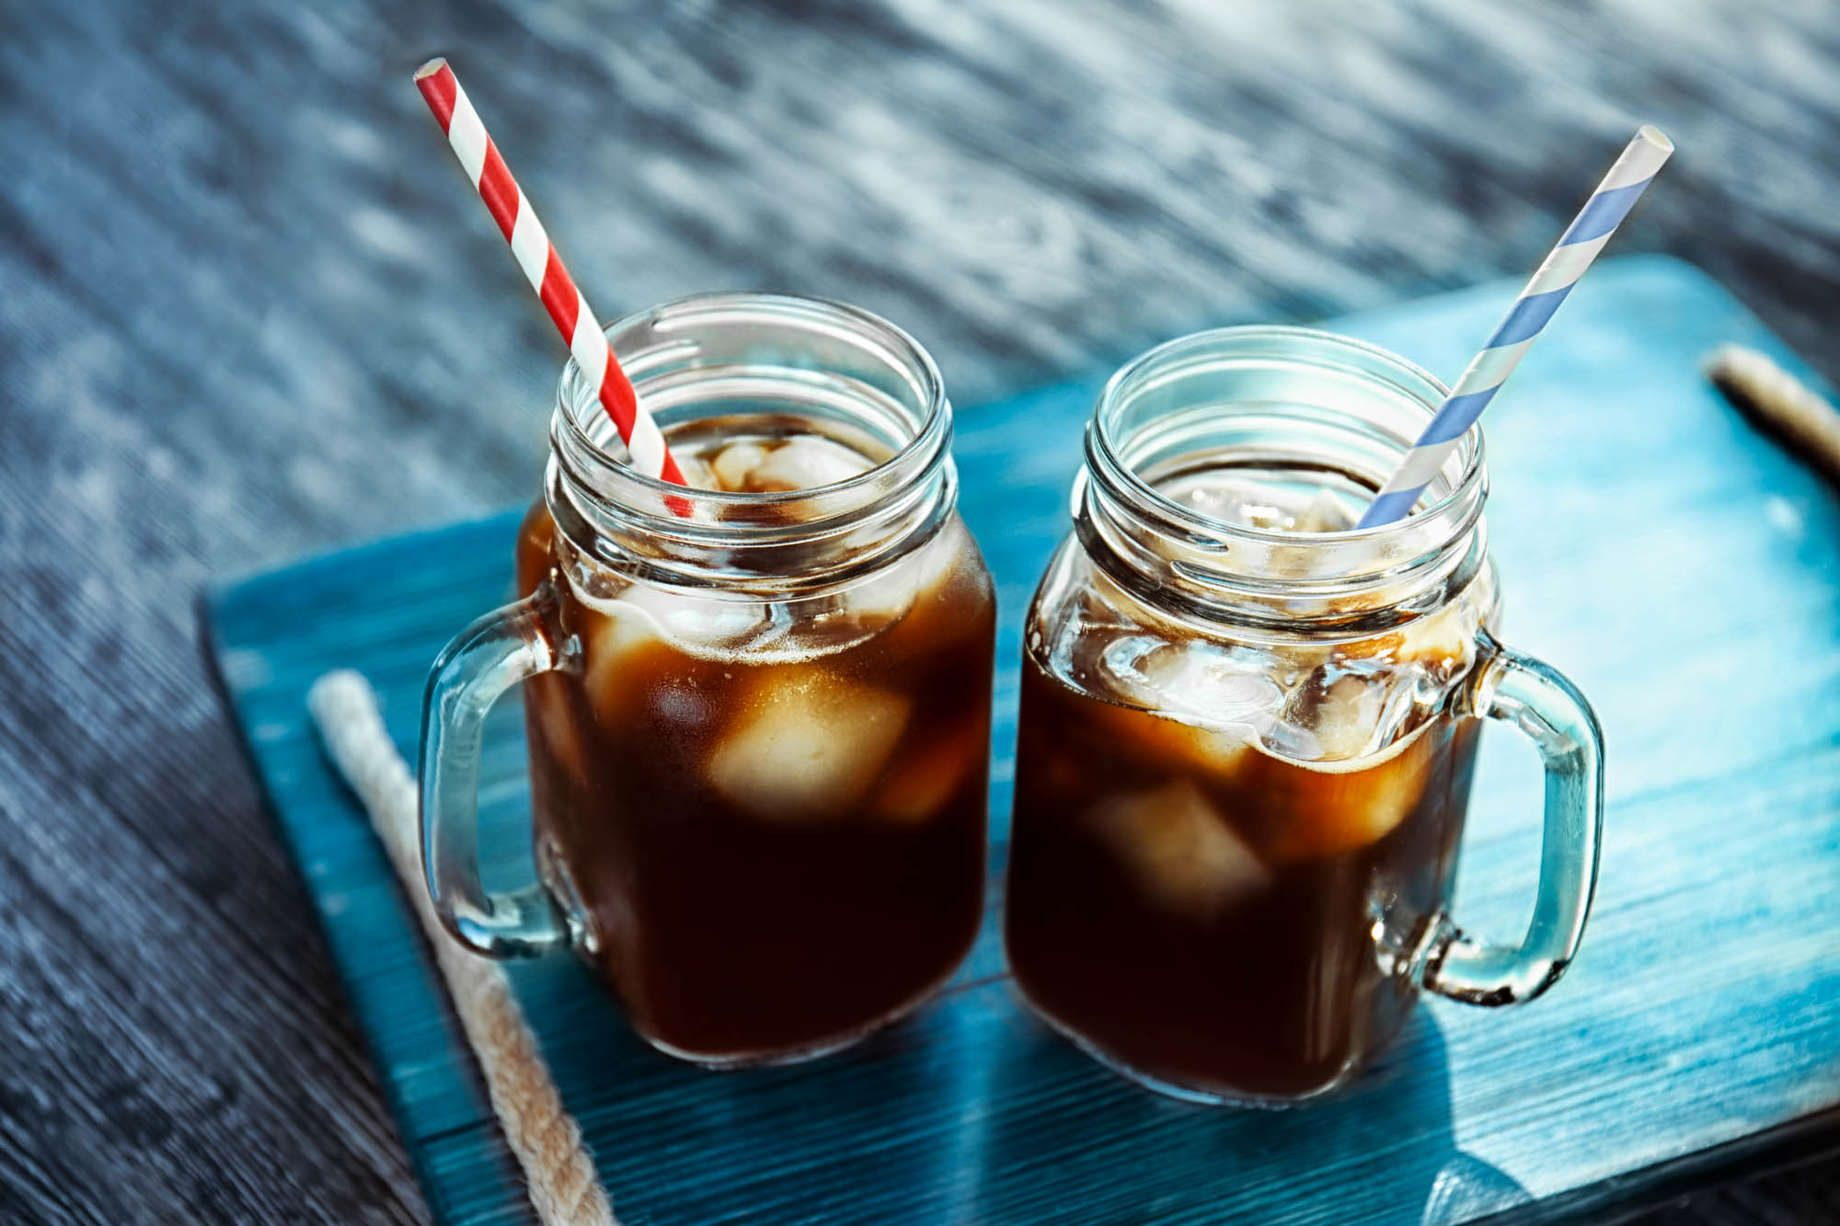 How to Make Cold Brewed Coffee at Home Making cold brew